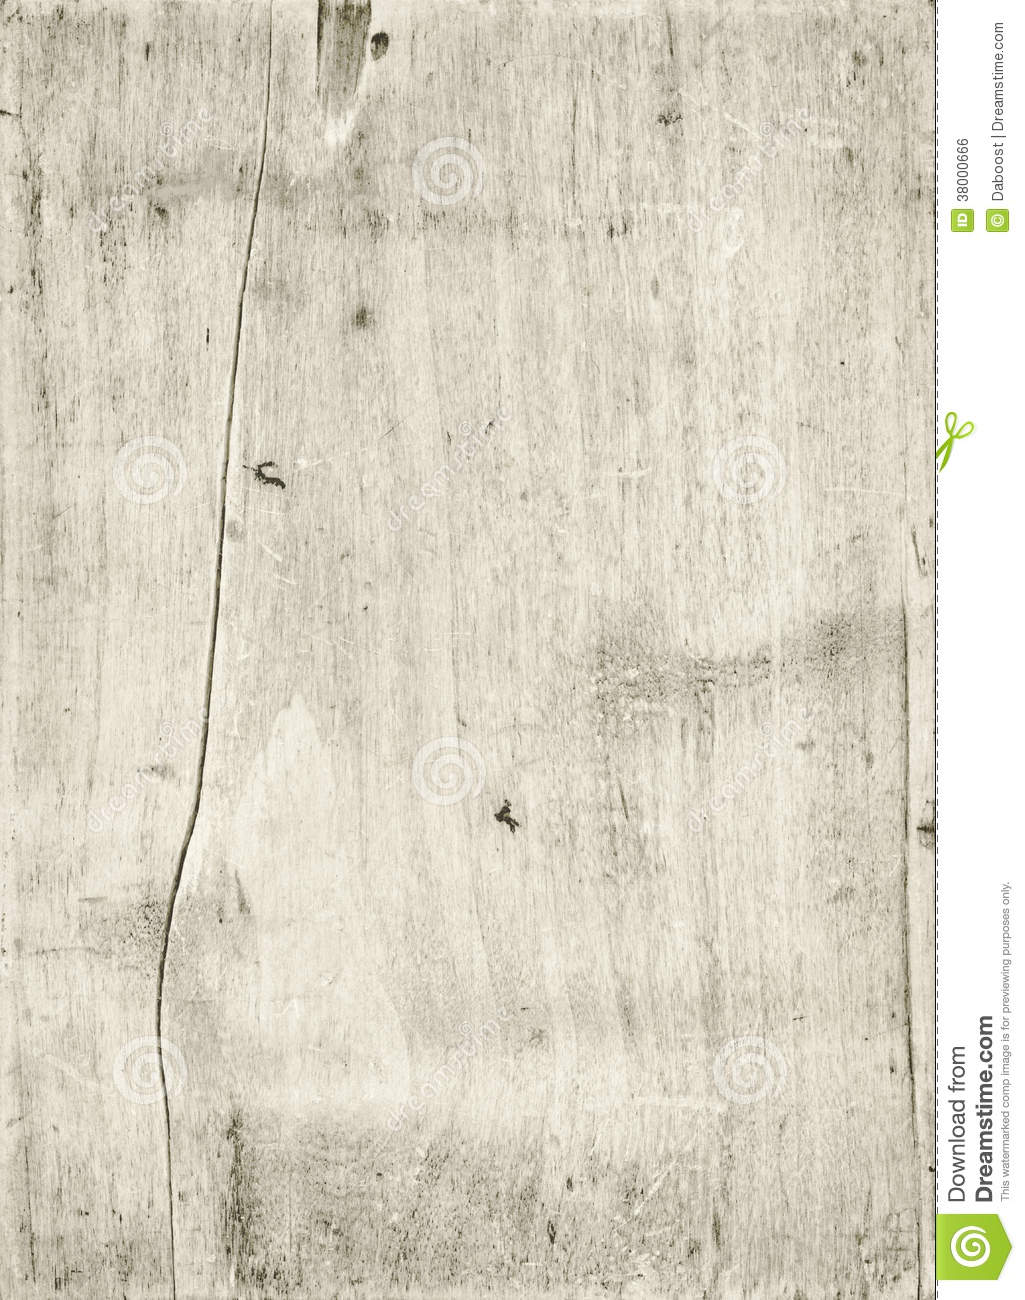 Old White Wood Texture Background Royalty Free Stock Image ...